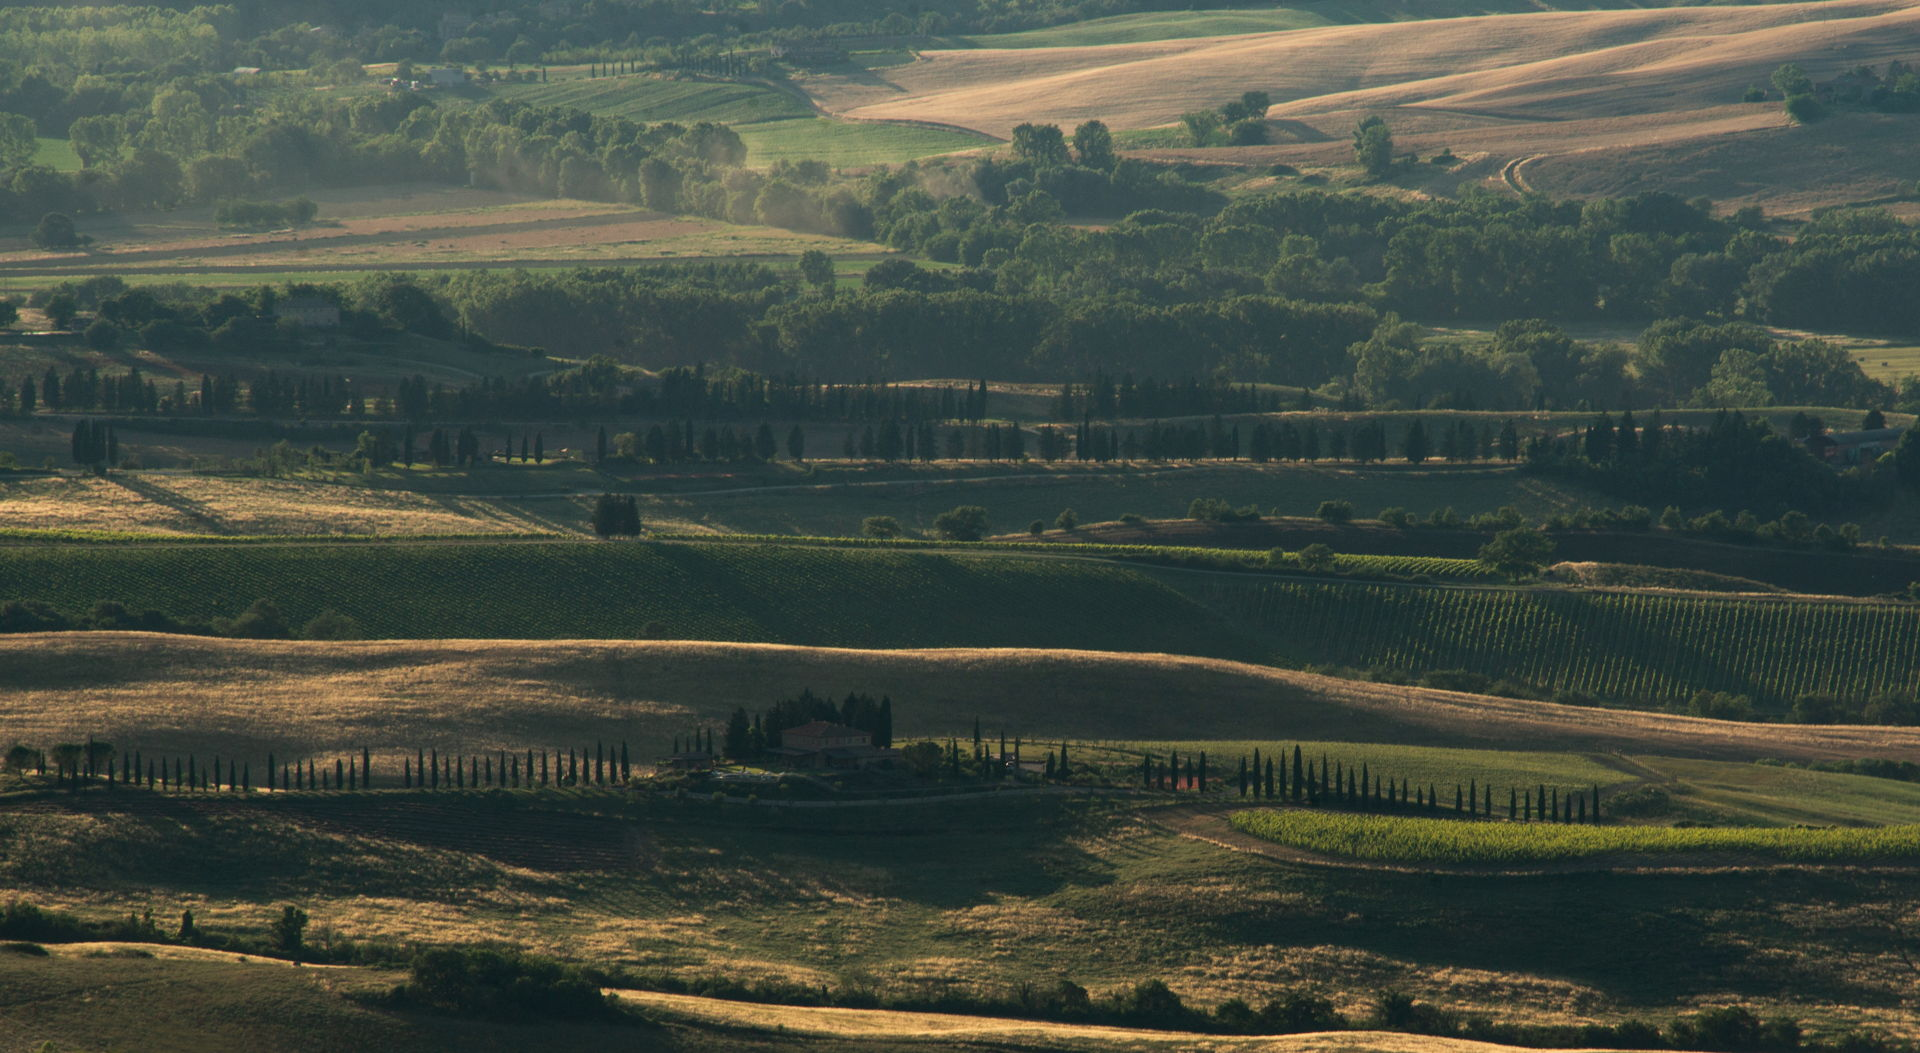 Tasting wine in Tuscany: discovering two wineries